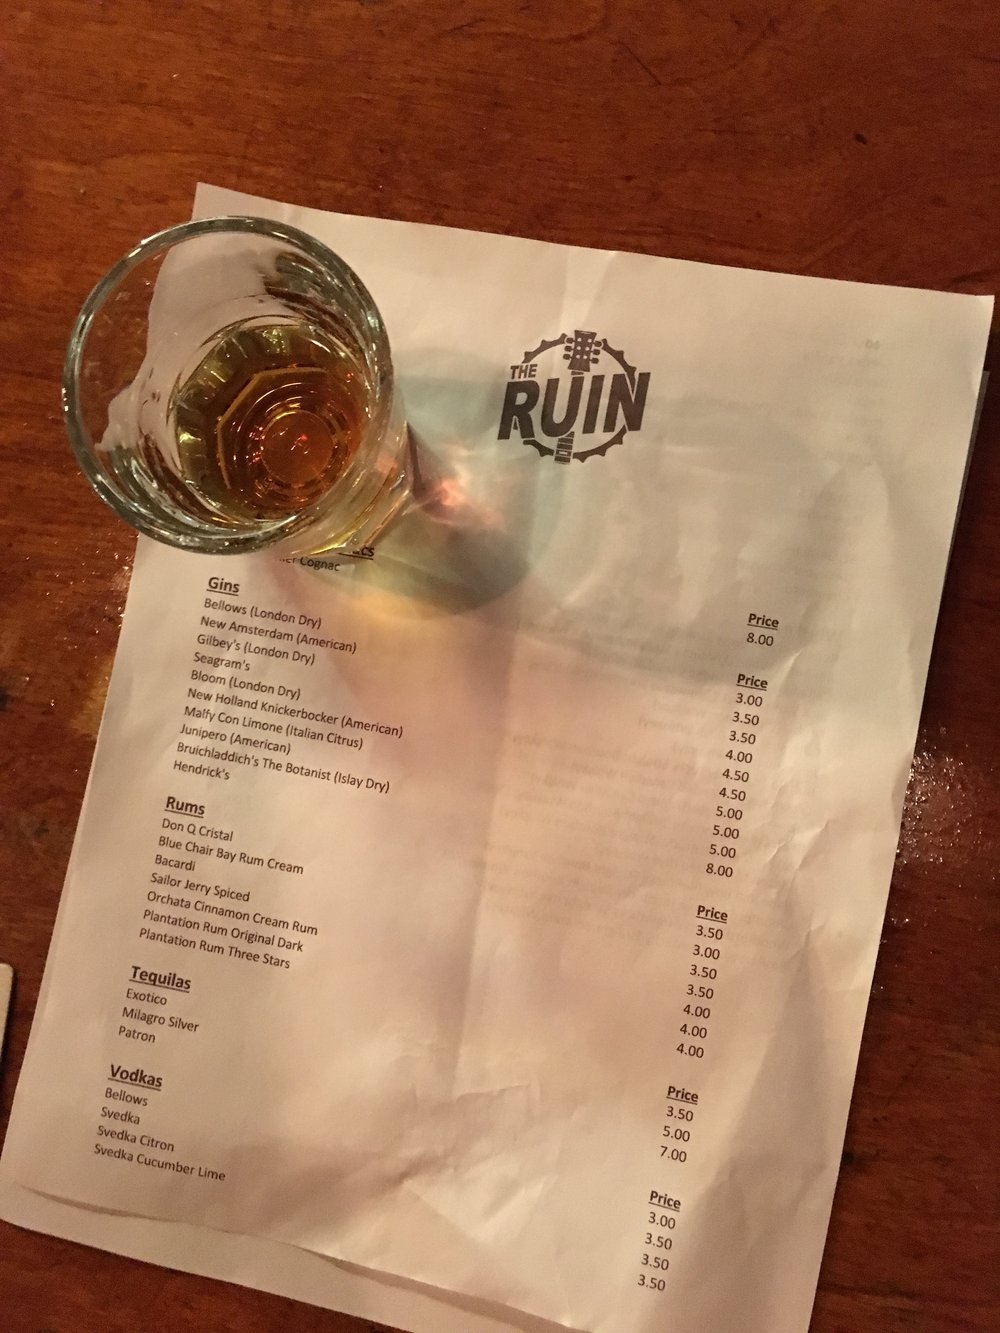 The Ruin Drink Menu